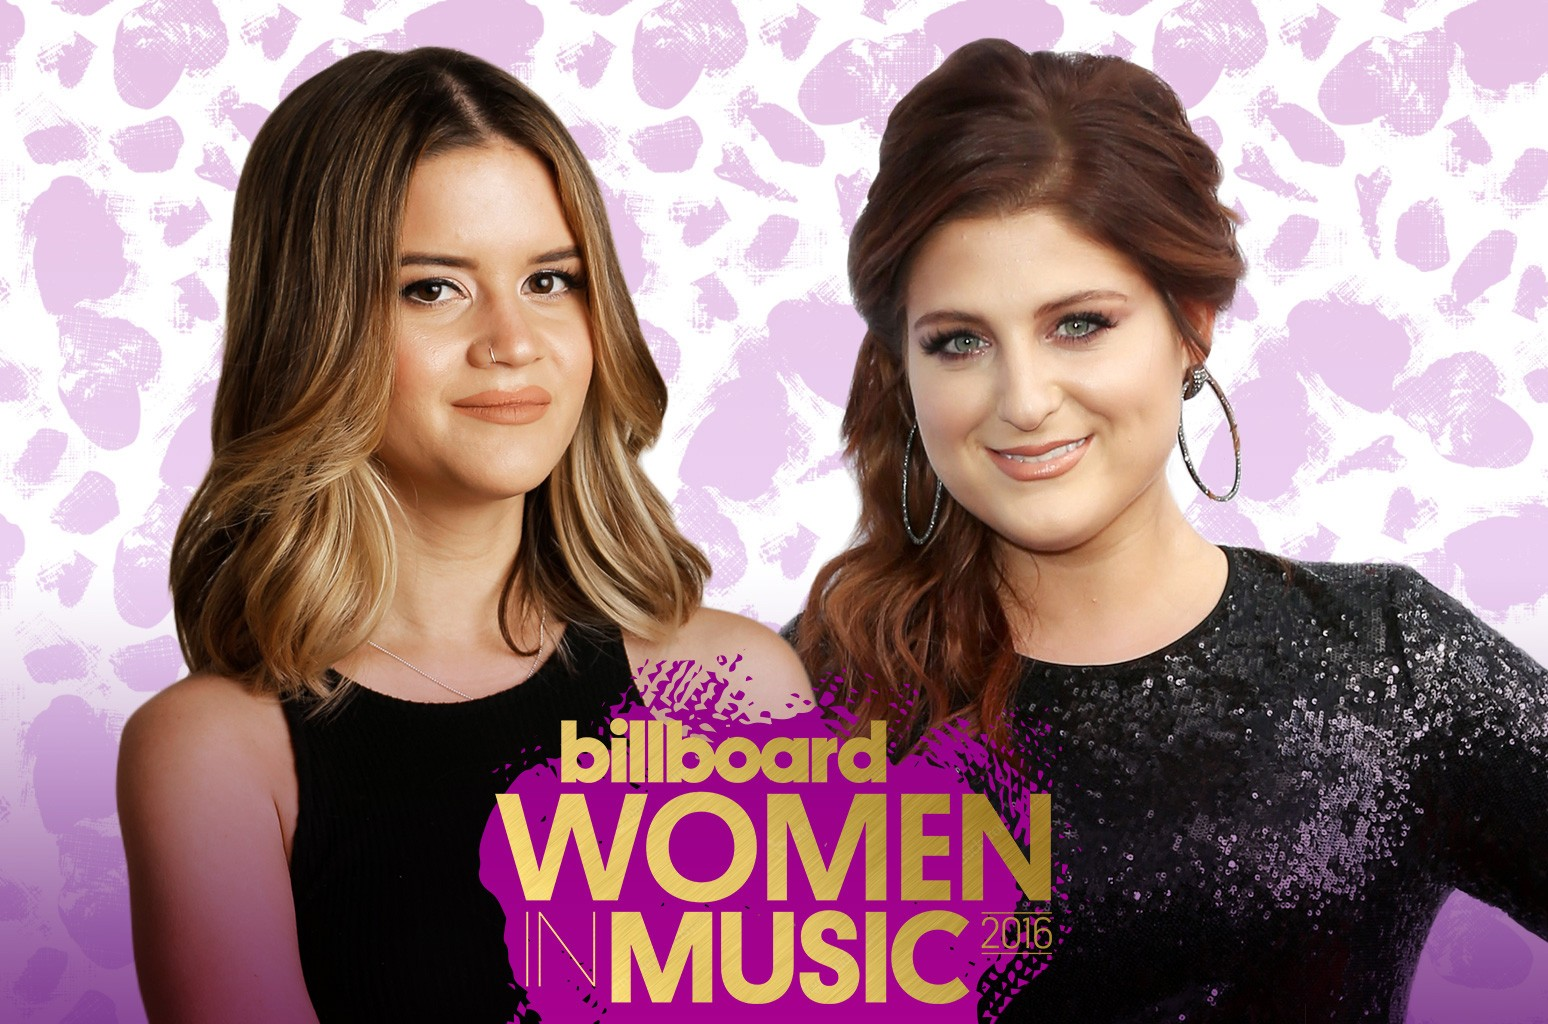 Maren Morris and Meghan Trainor